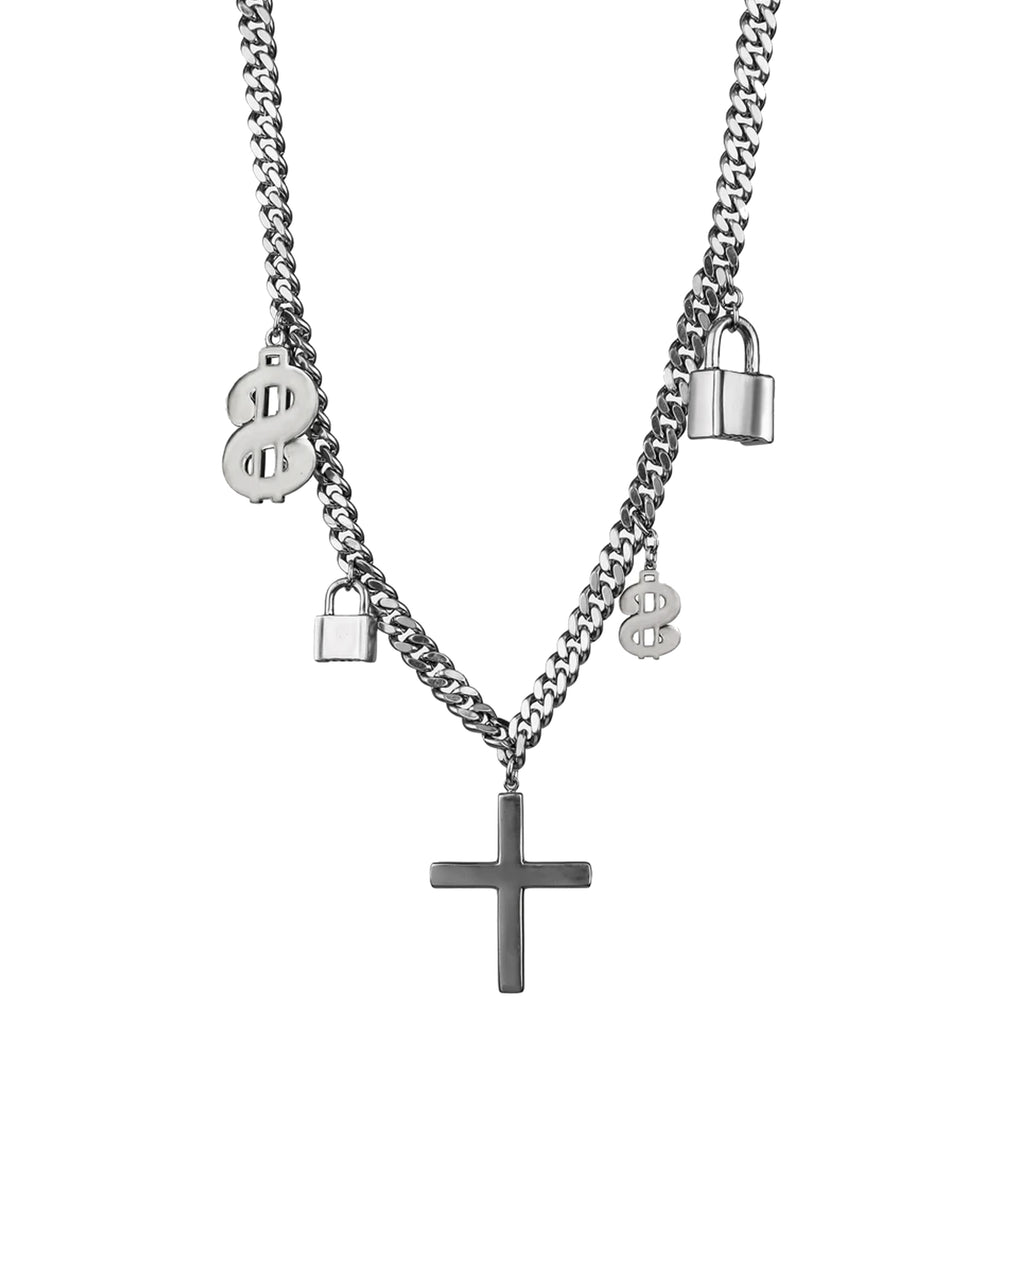 NM01531 - MIXED XL SYMBOL CHARM NECKLACE - outerwear - blazers - THIS HEAVY CHAIN NECKLACE FEATURES NICOLE'S FAVORITE CHARMS AND A CROSS.